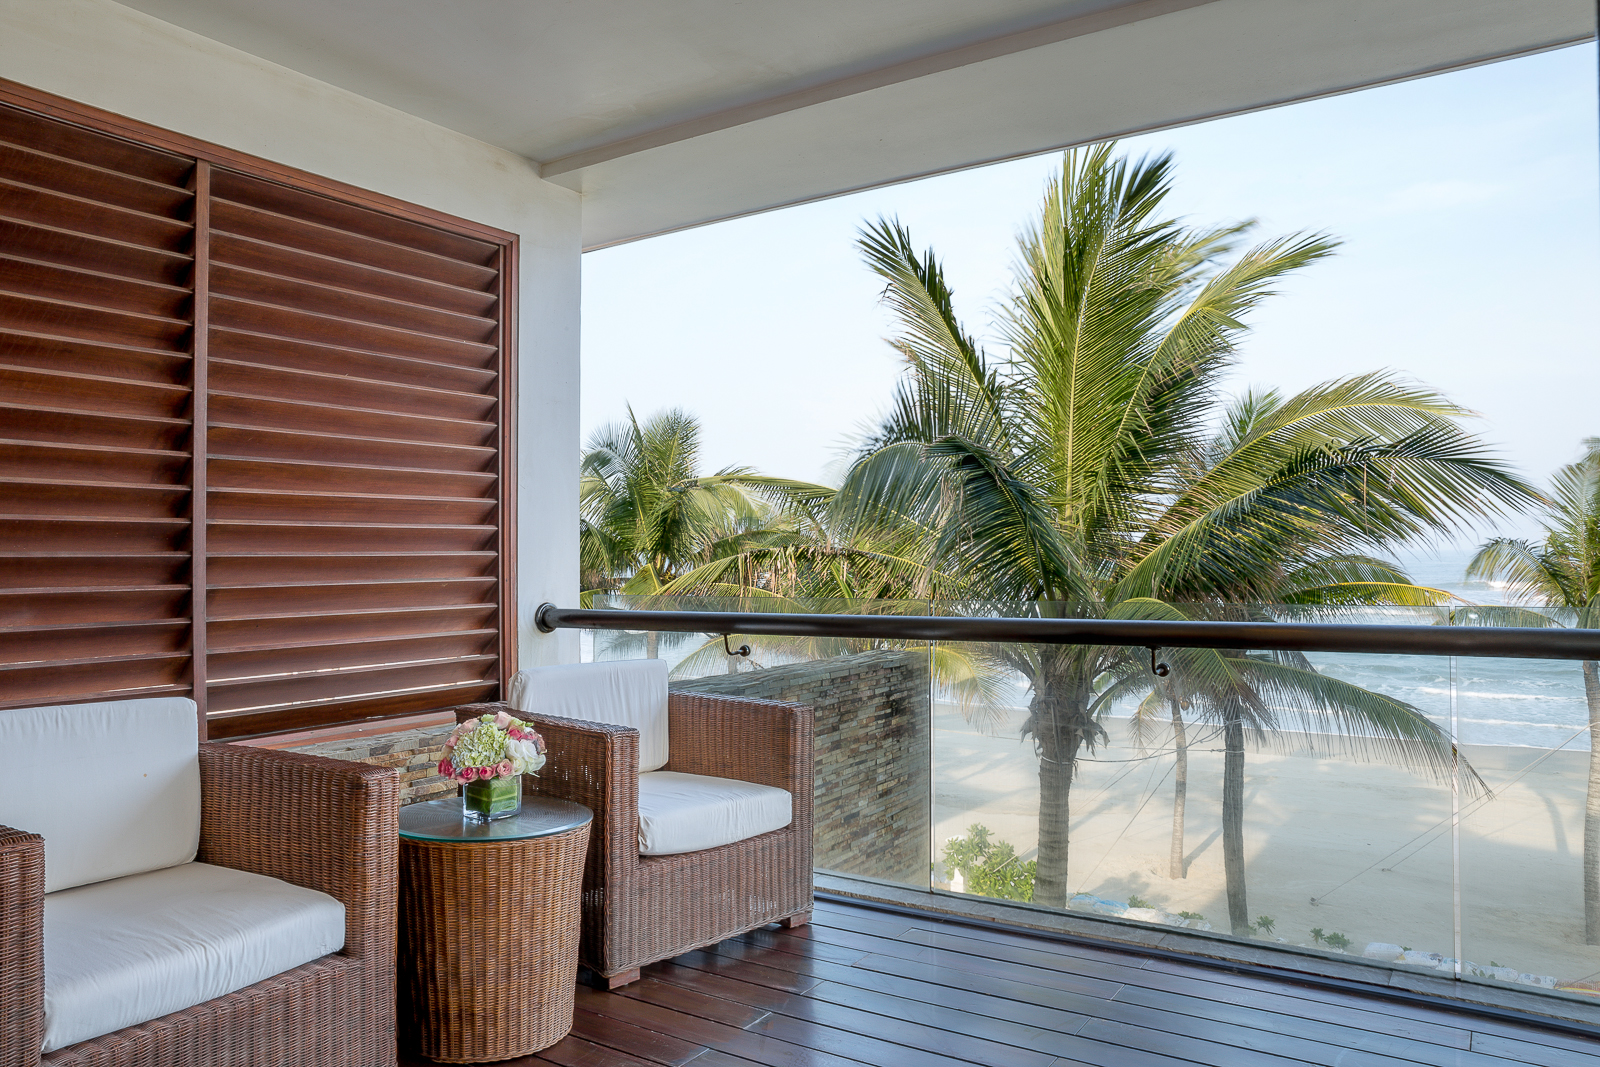 VINPEAL LUXURY DANANG